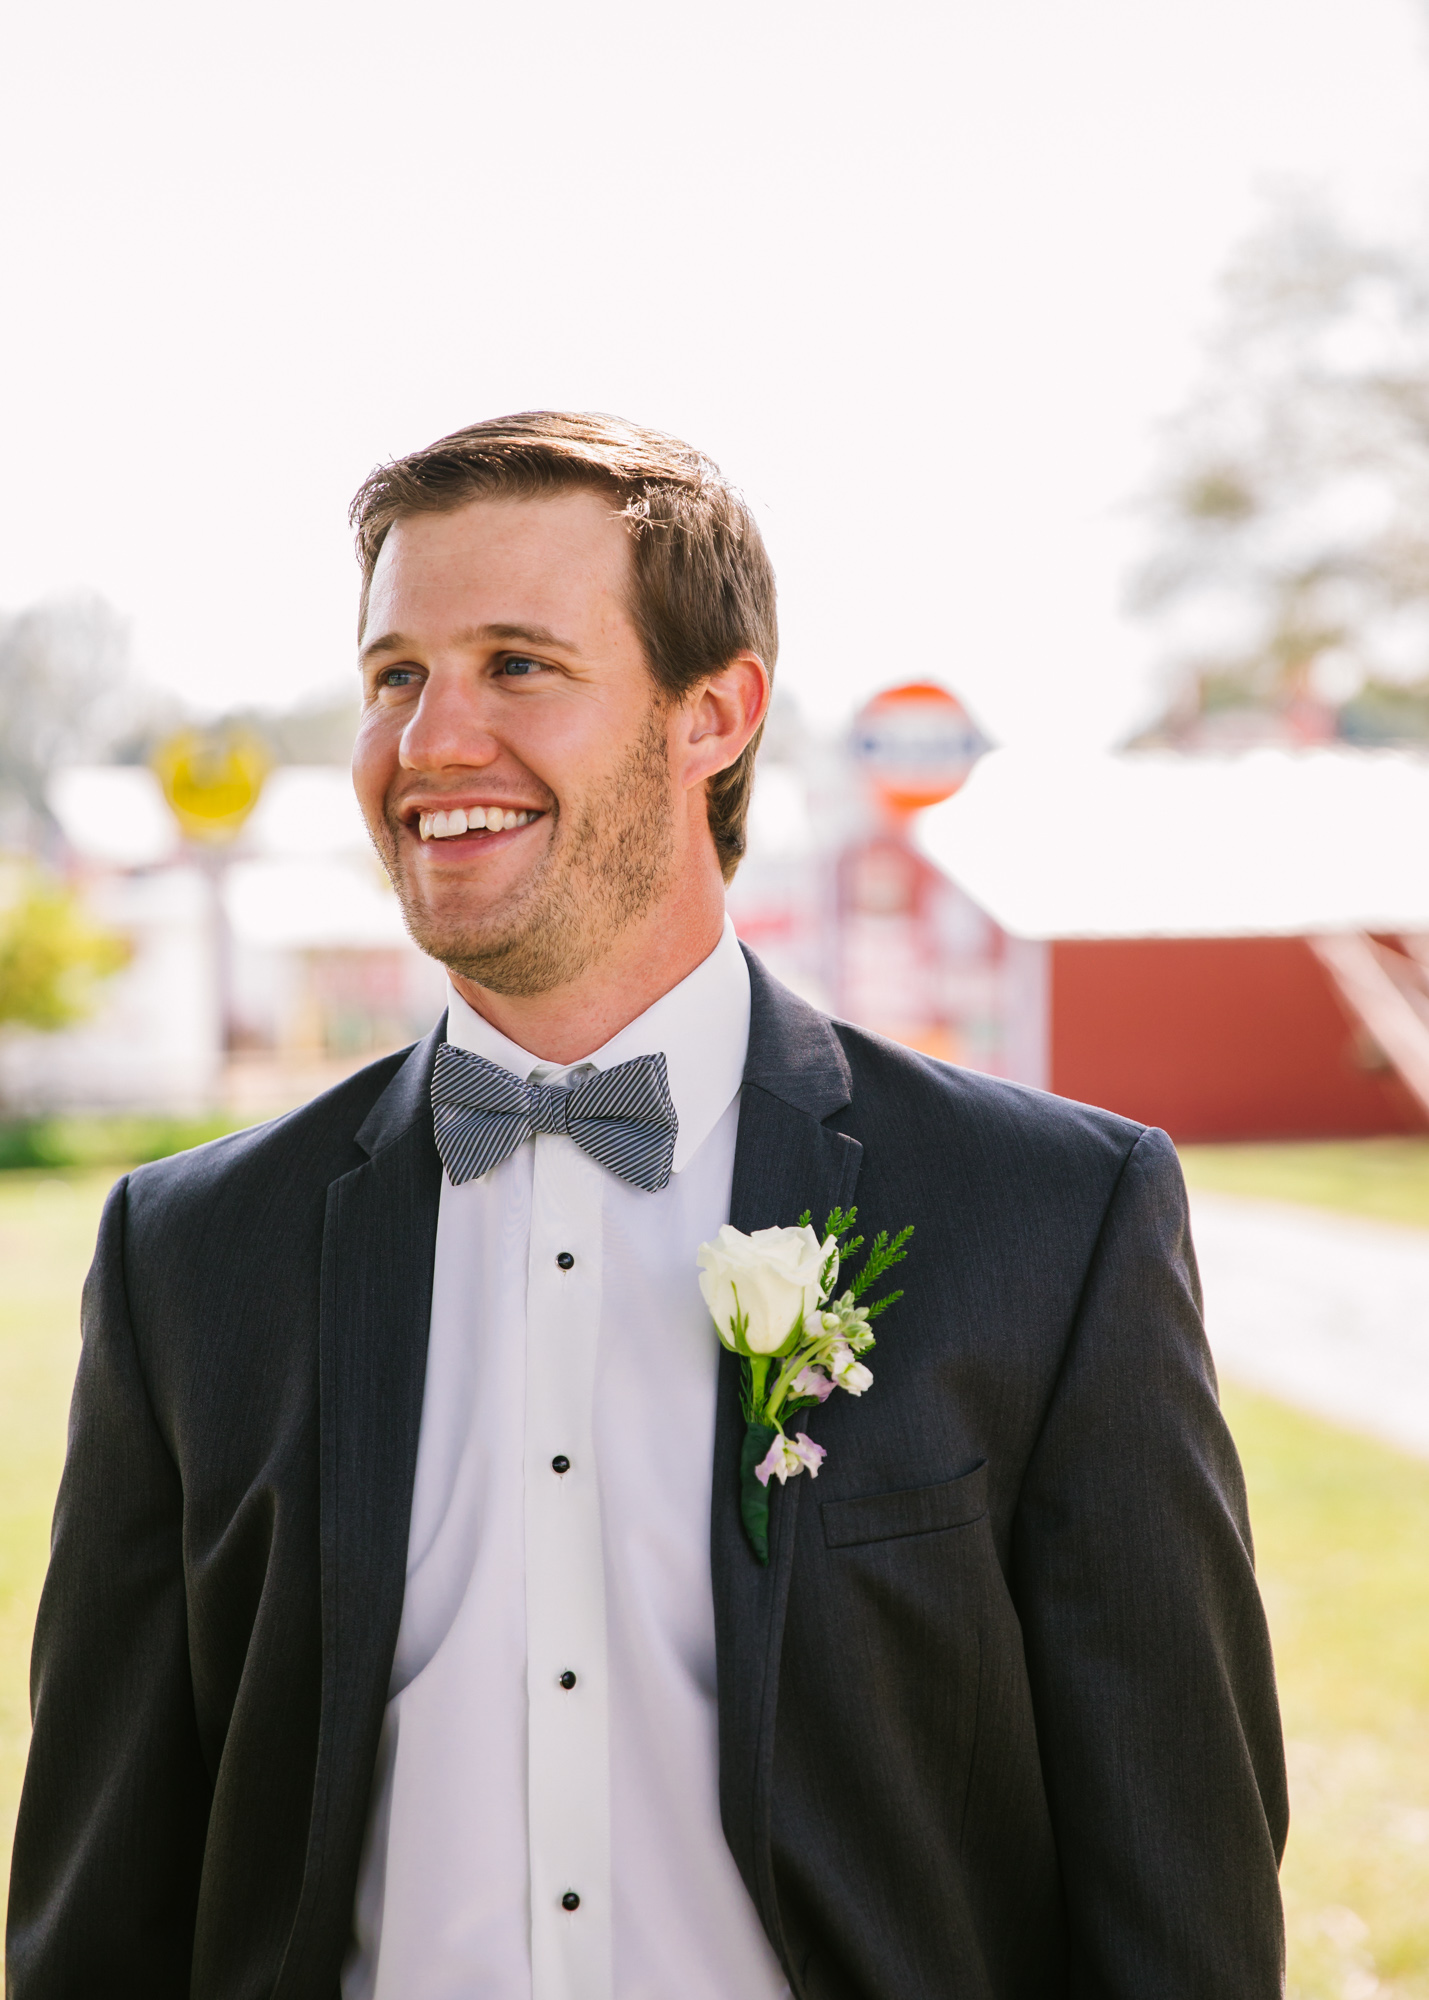 Waynesville, NC Wedding Photography | Groom Solo Portrait